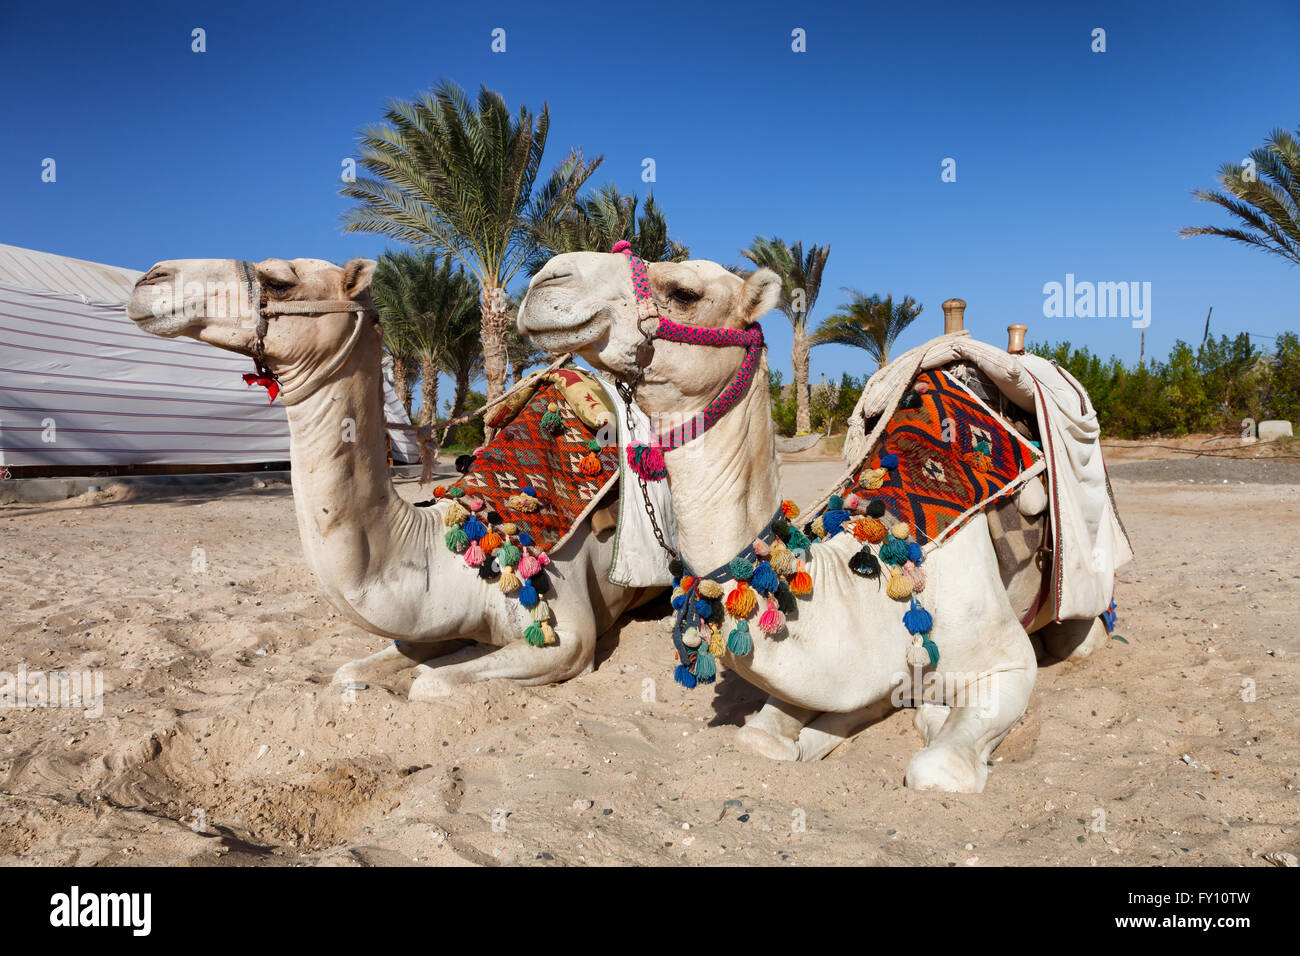 two colorful camels in egypt - Stock Image